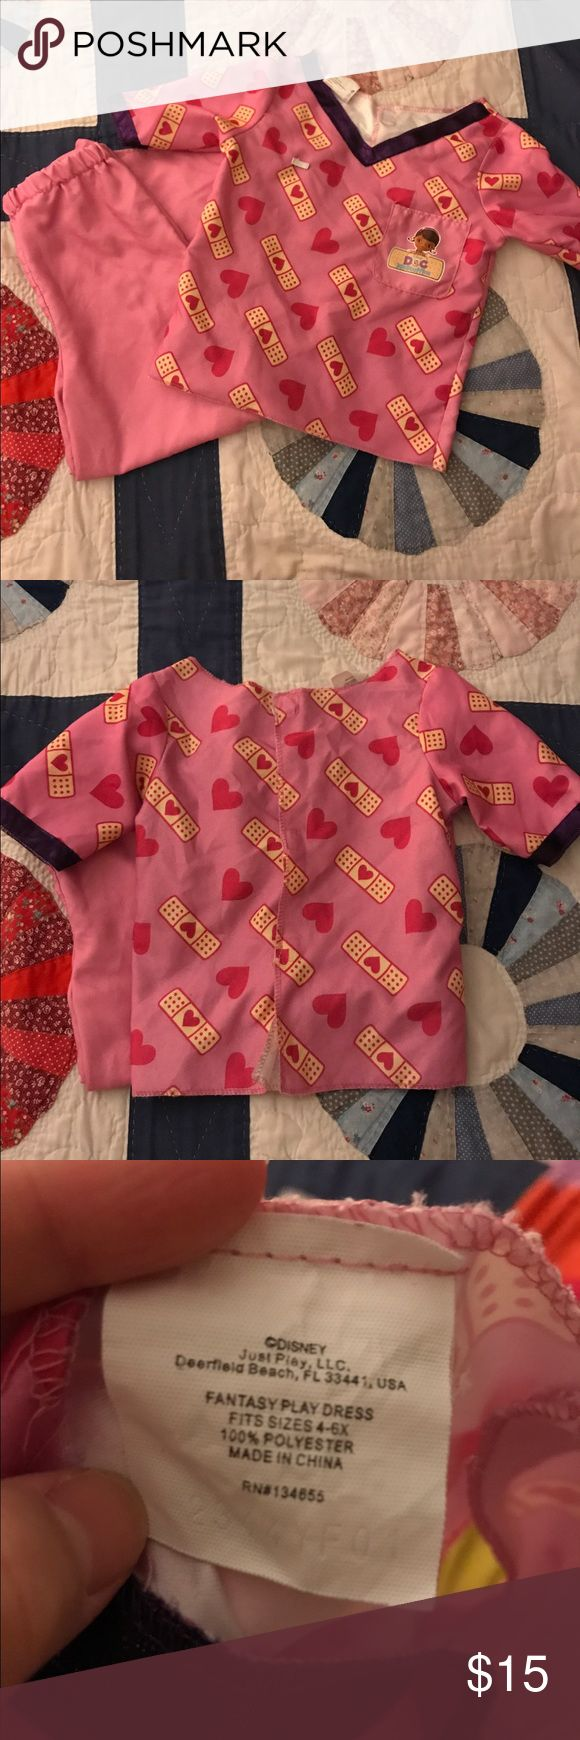 Disney Doc McStuffins Play Scrubs Disney Doc McStuffins Play Scrubs. Size 4-6X Little Girls. In good condition. A small part of the fabric is loose from the elastic waistband but could be easily fixed. Disney Costumes Halloween